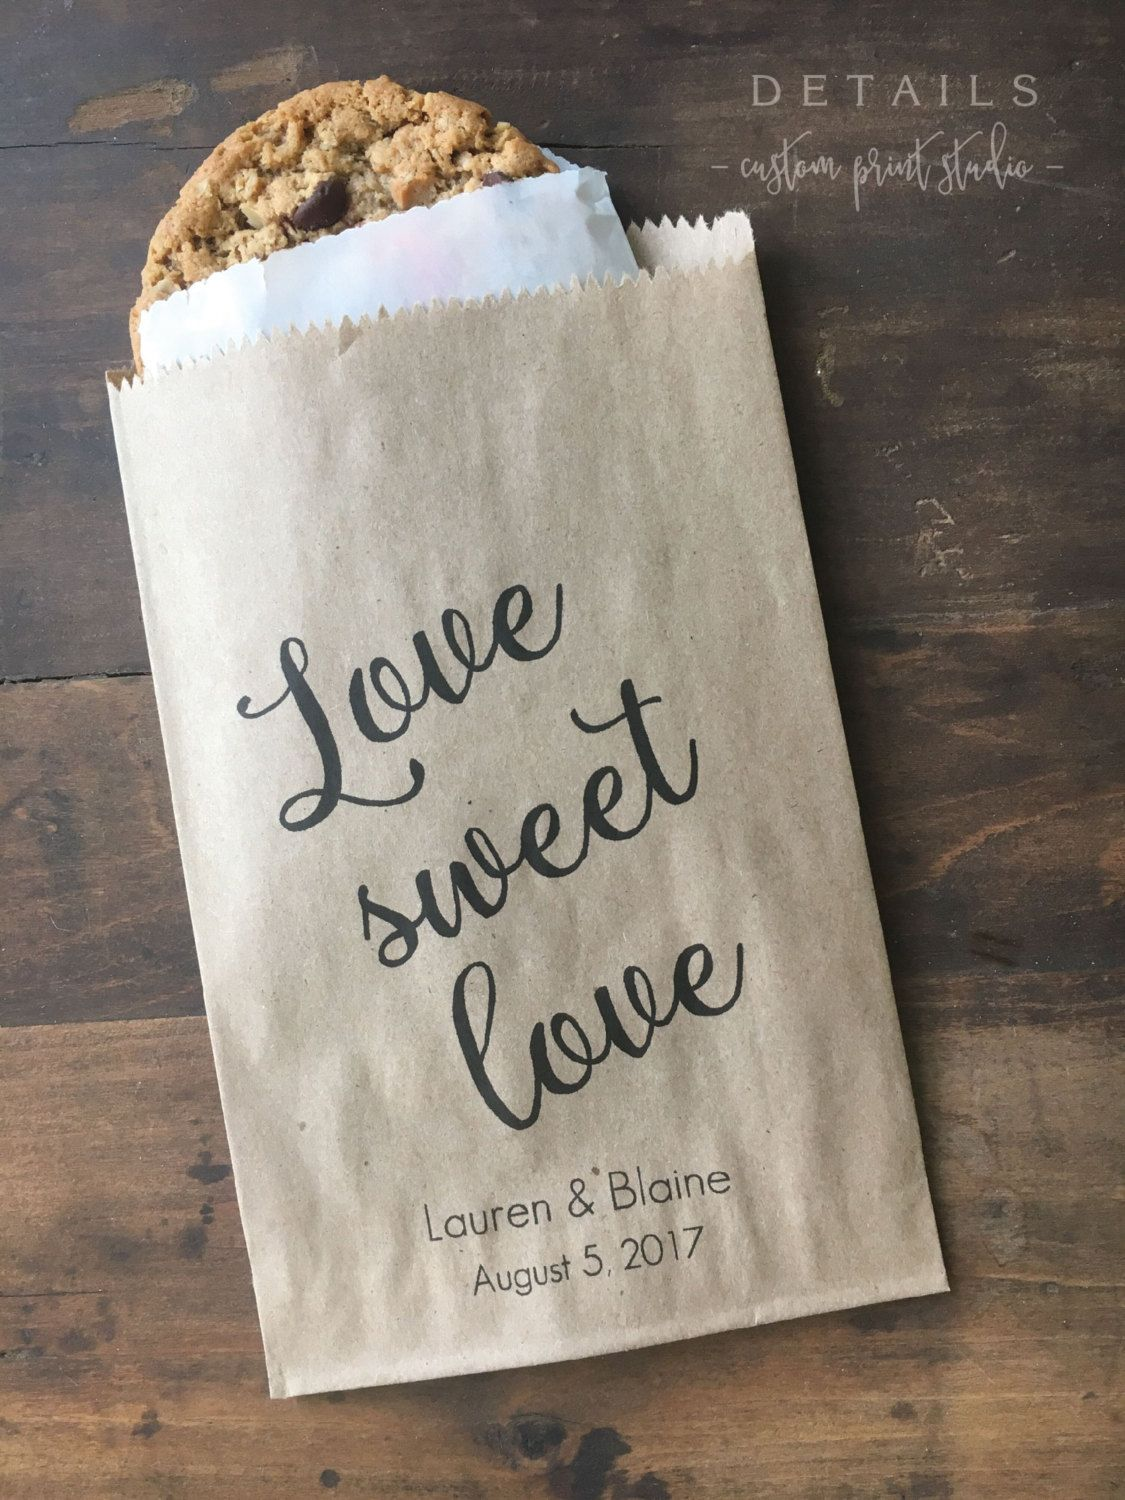 Wedding Cookie Bags Candy Buffet Sacks Custom Favors 25 Cake Recycled Brown Paper Personalized Printed Sack By Detailsondemand On Etsy